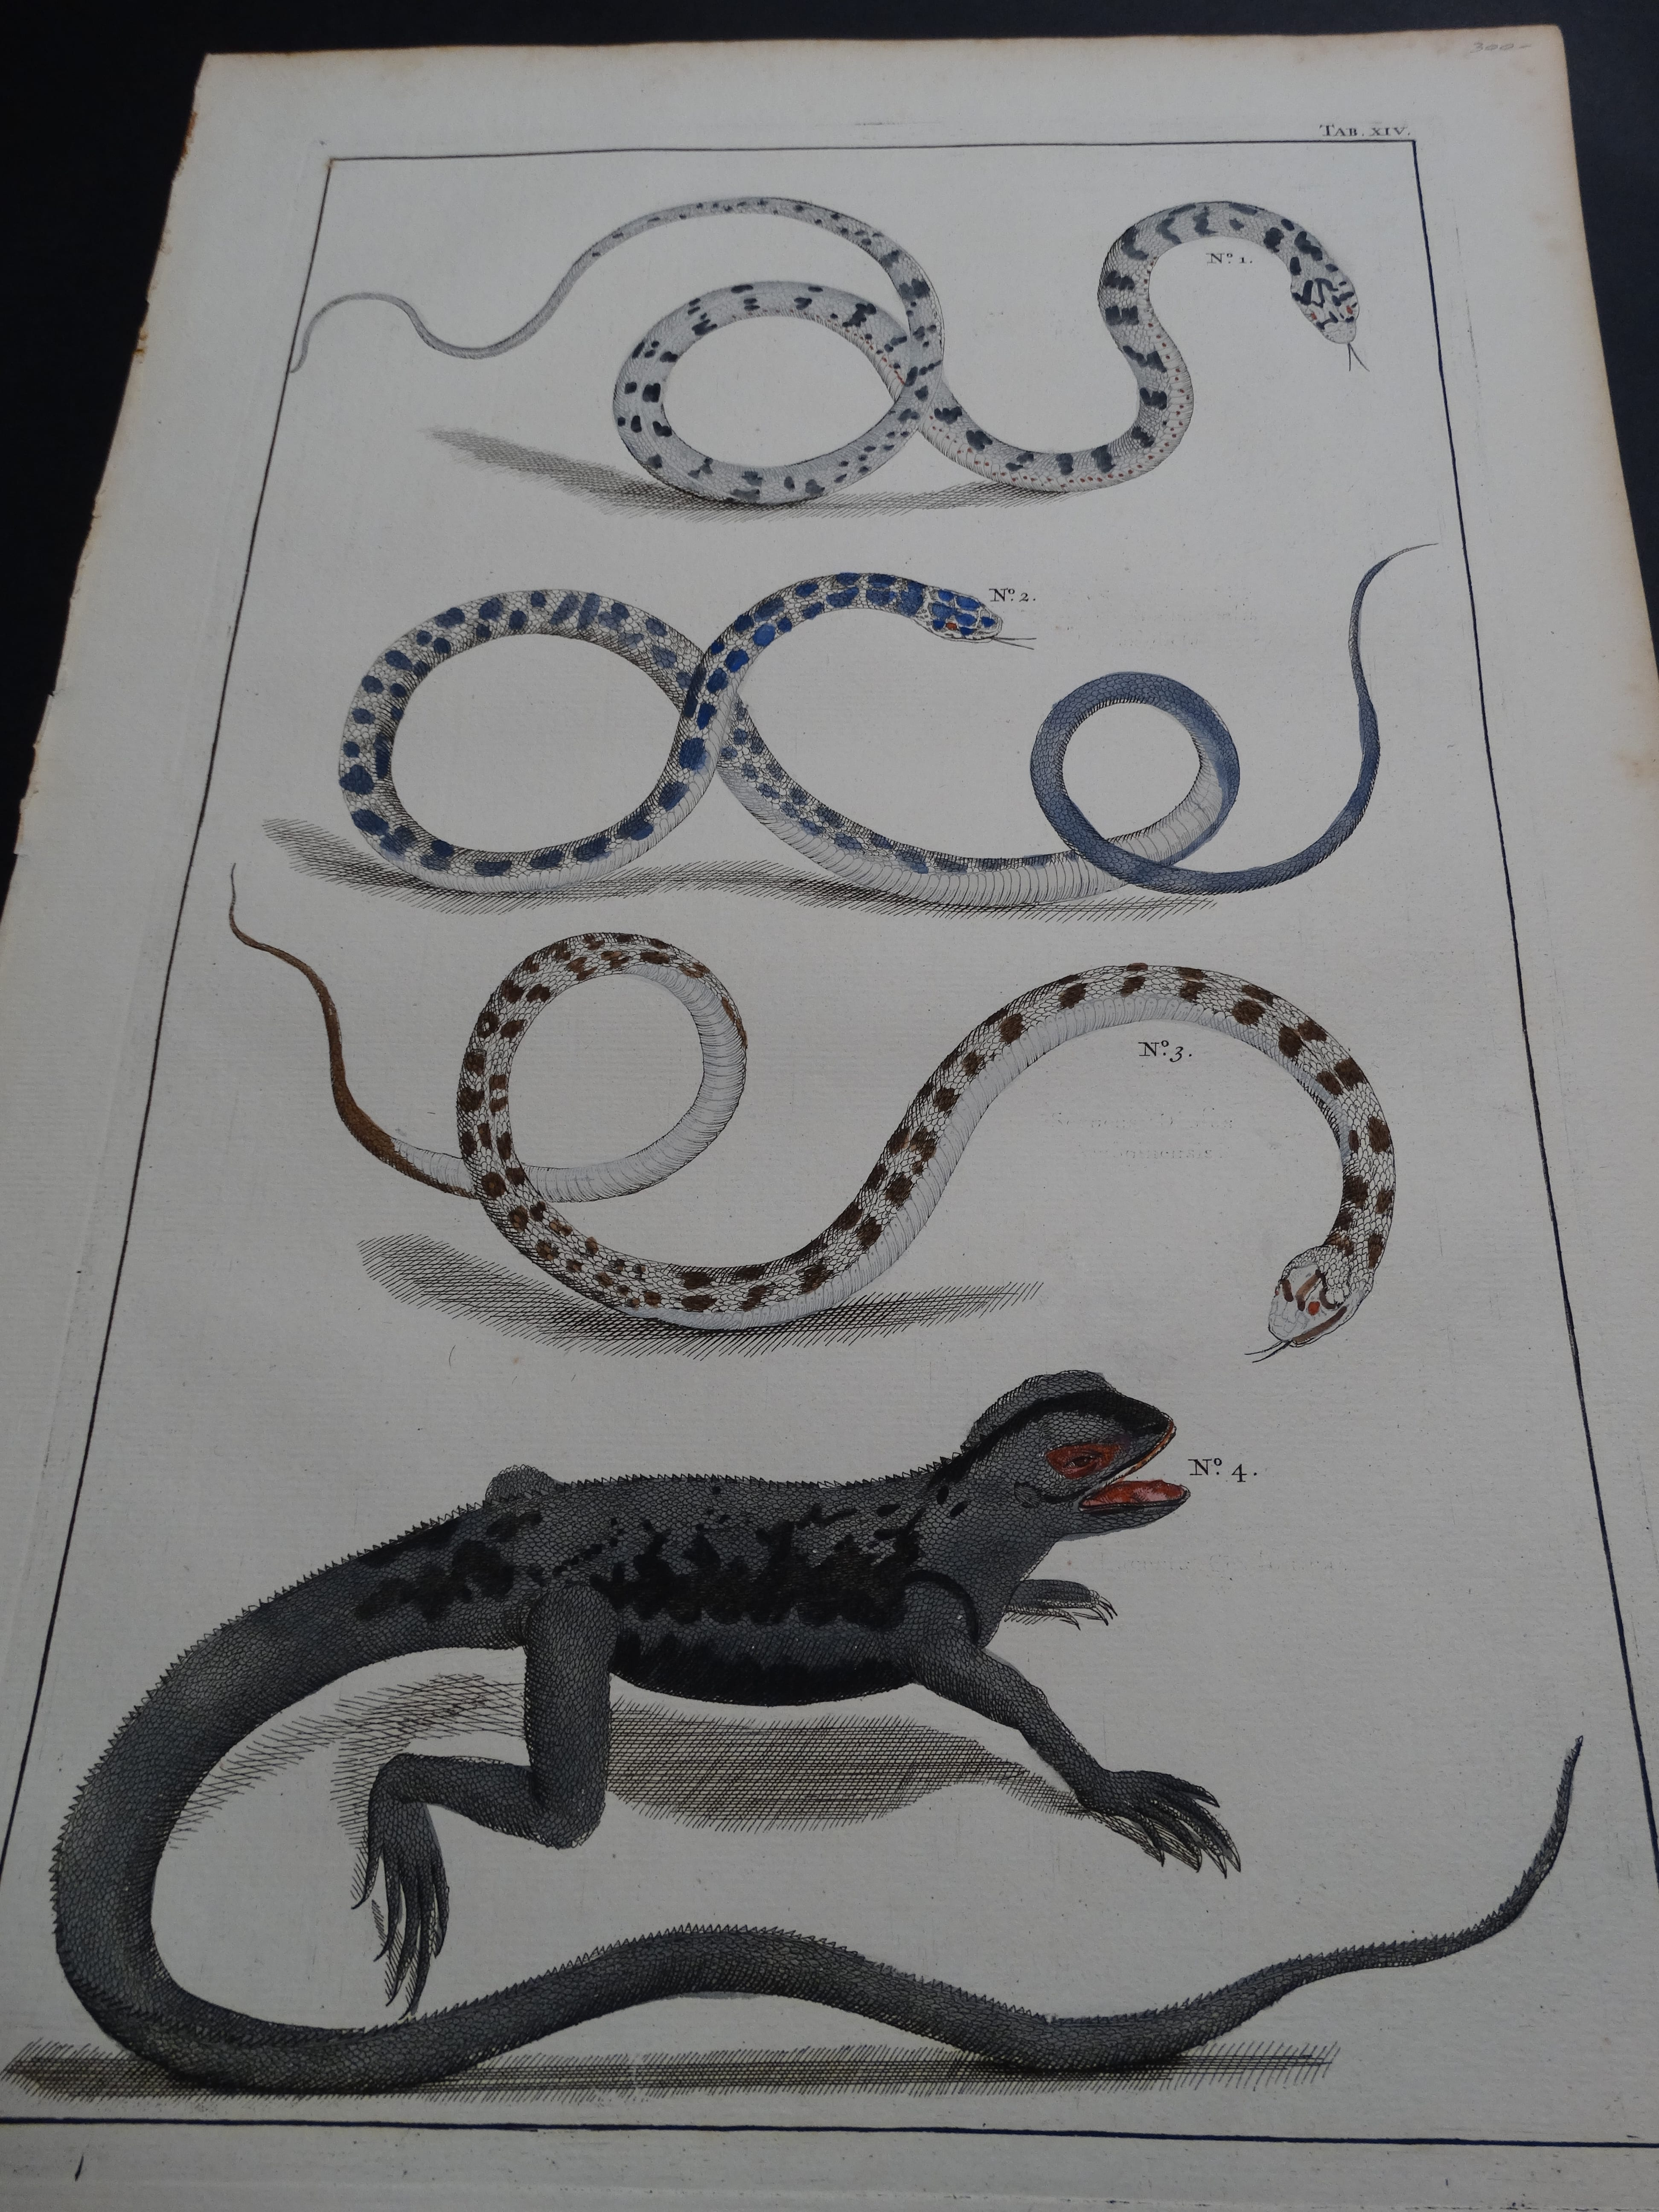 Albertus Seba Lizards and Snakes Pl. XIV